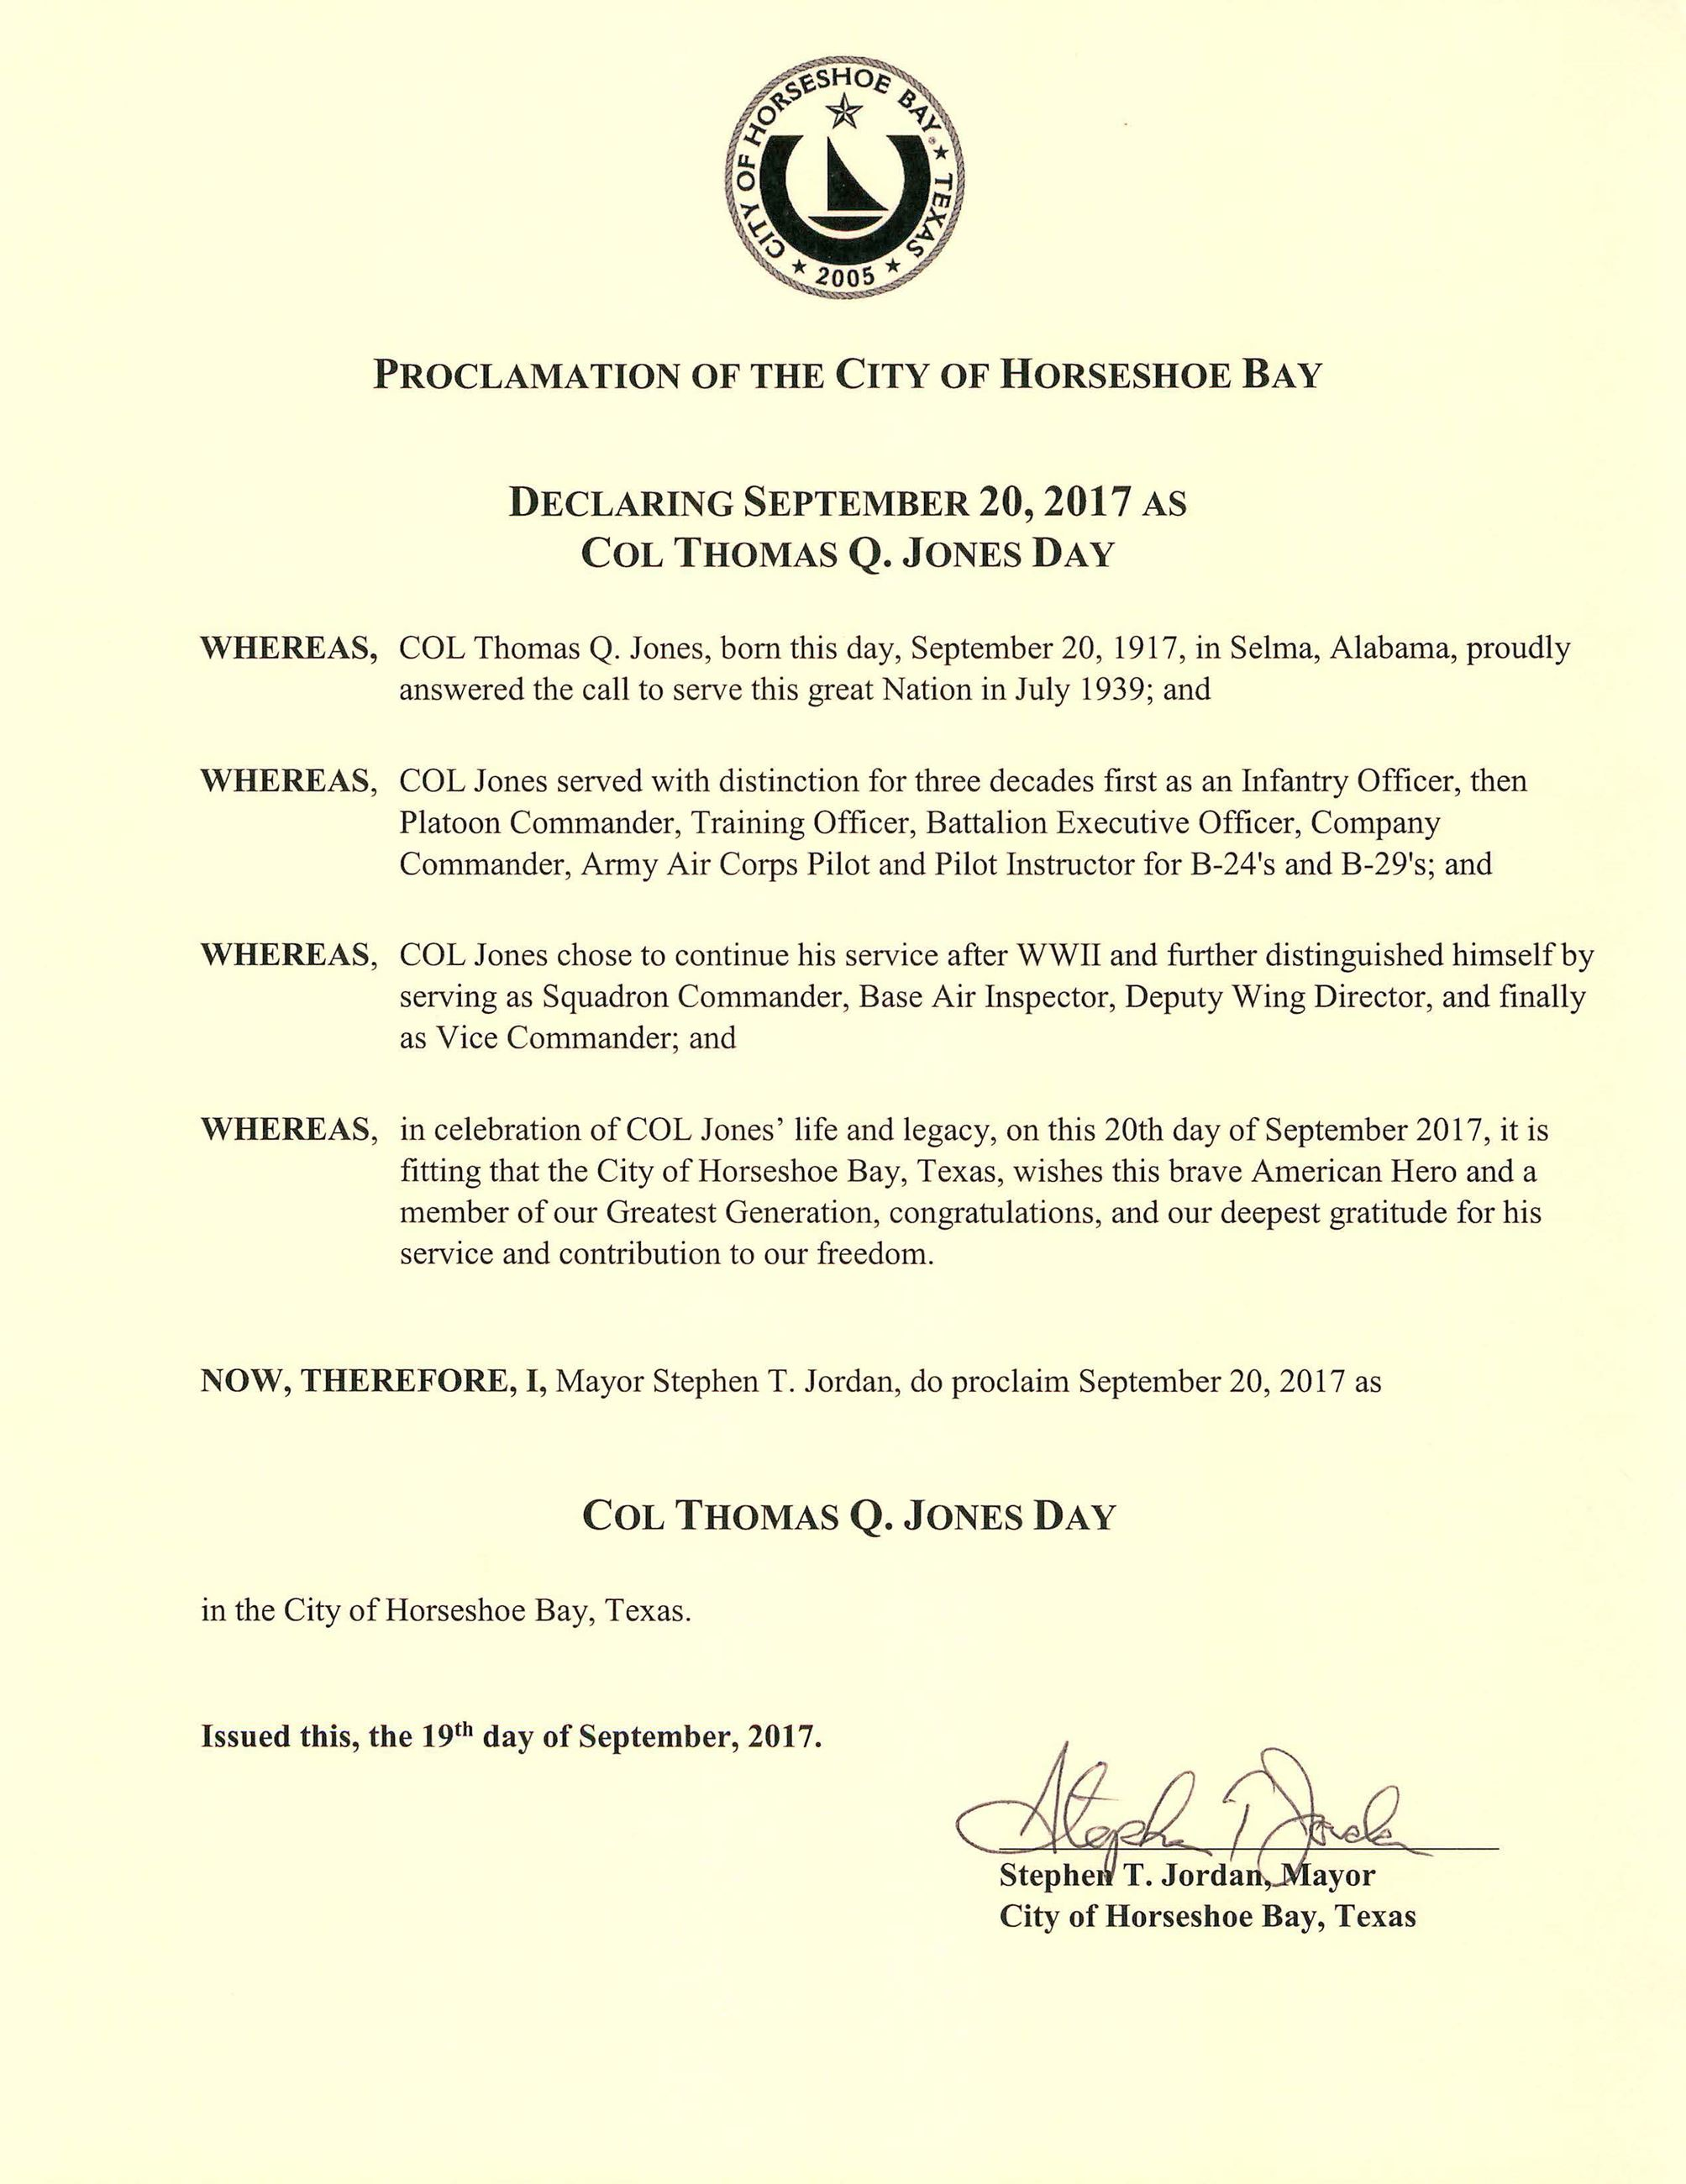 Col Thomas Jones Day Proclamation